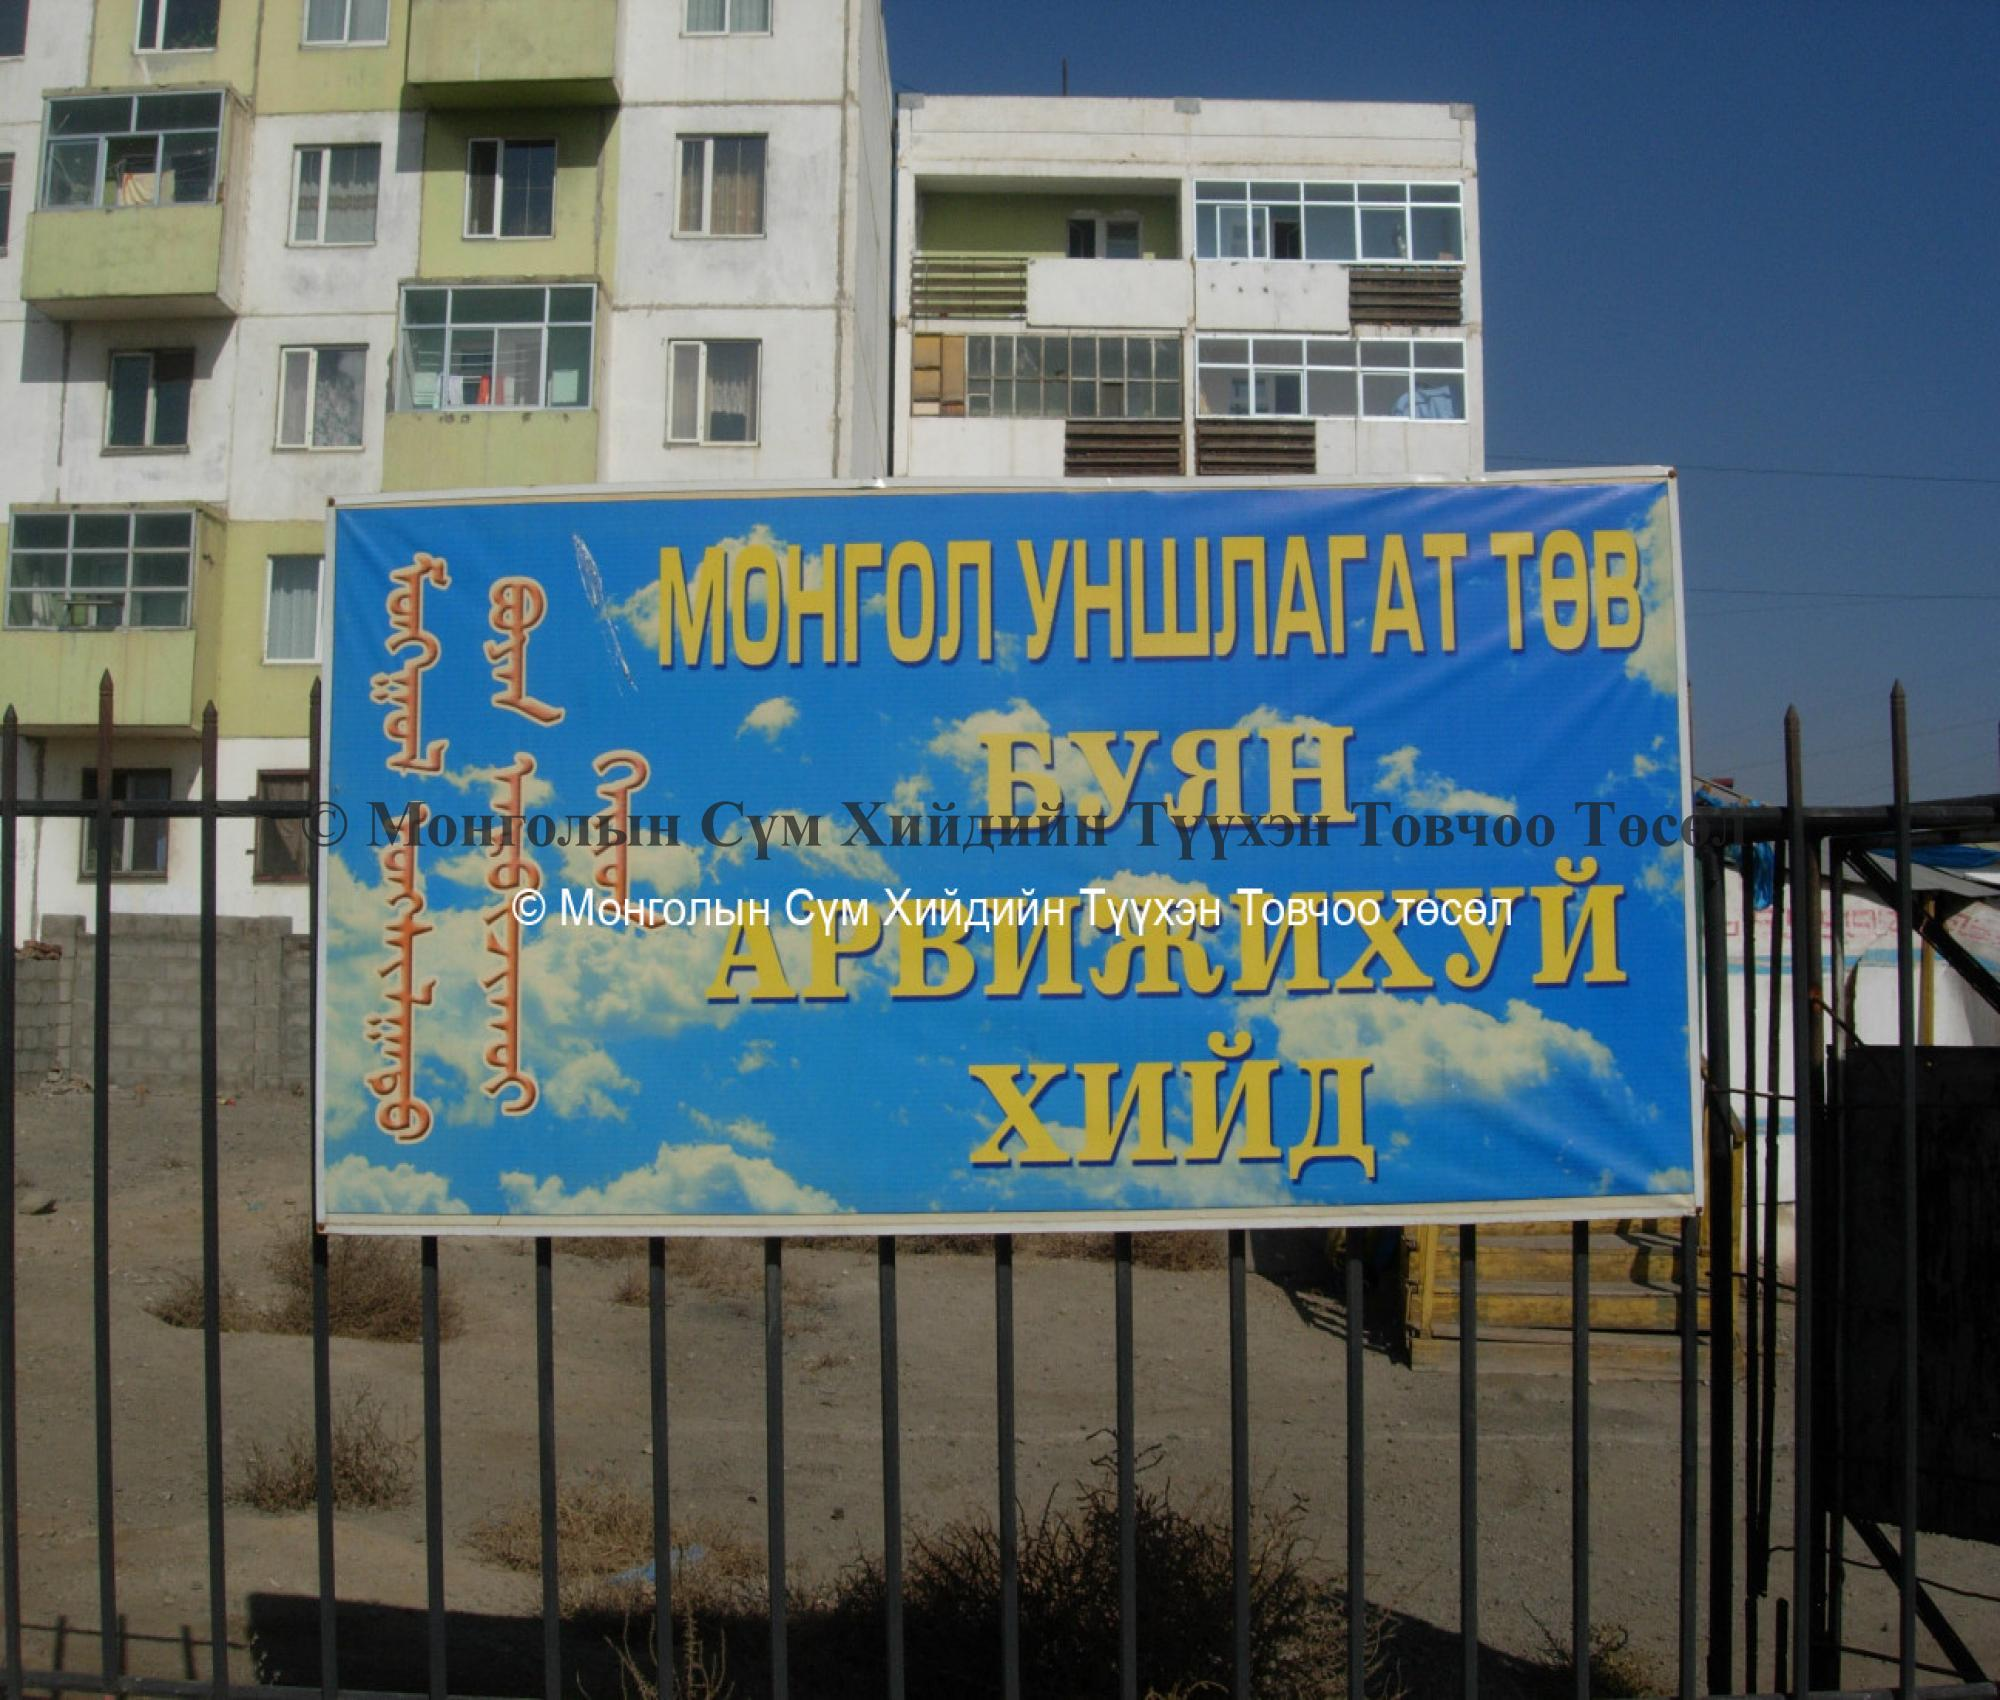 Notice board in Cyrillic script on front fence